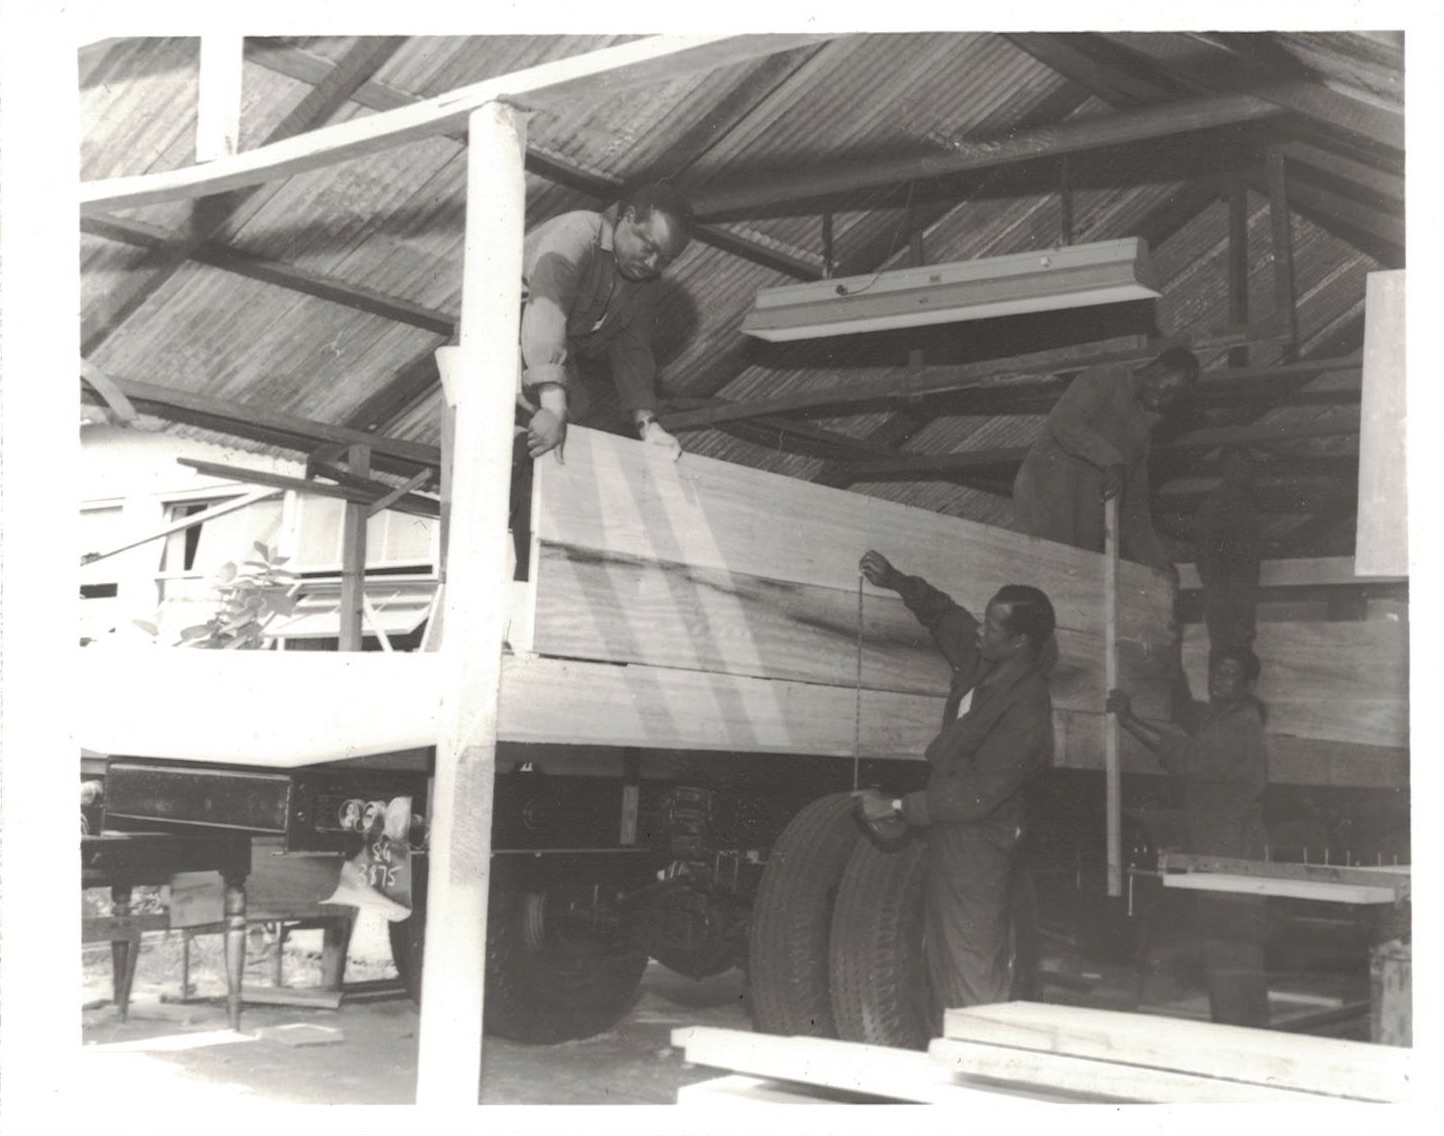 Carpenters construct the wooden body of a new truck. Source: GT-9A Photographic Section, Information Services Department, Ministry of Information, Accra, Ghana.